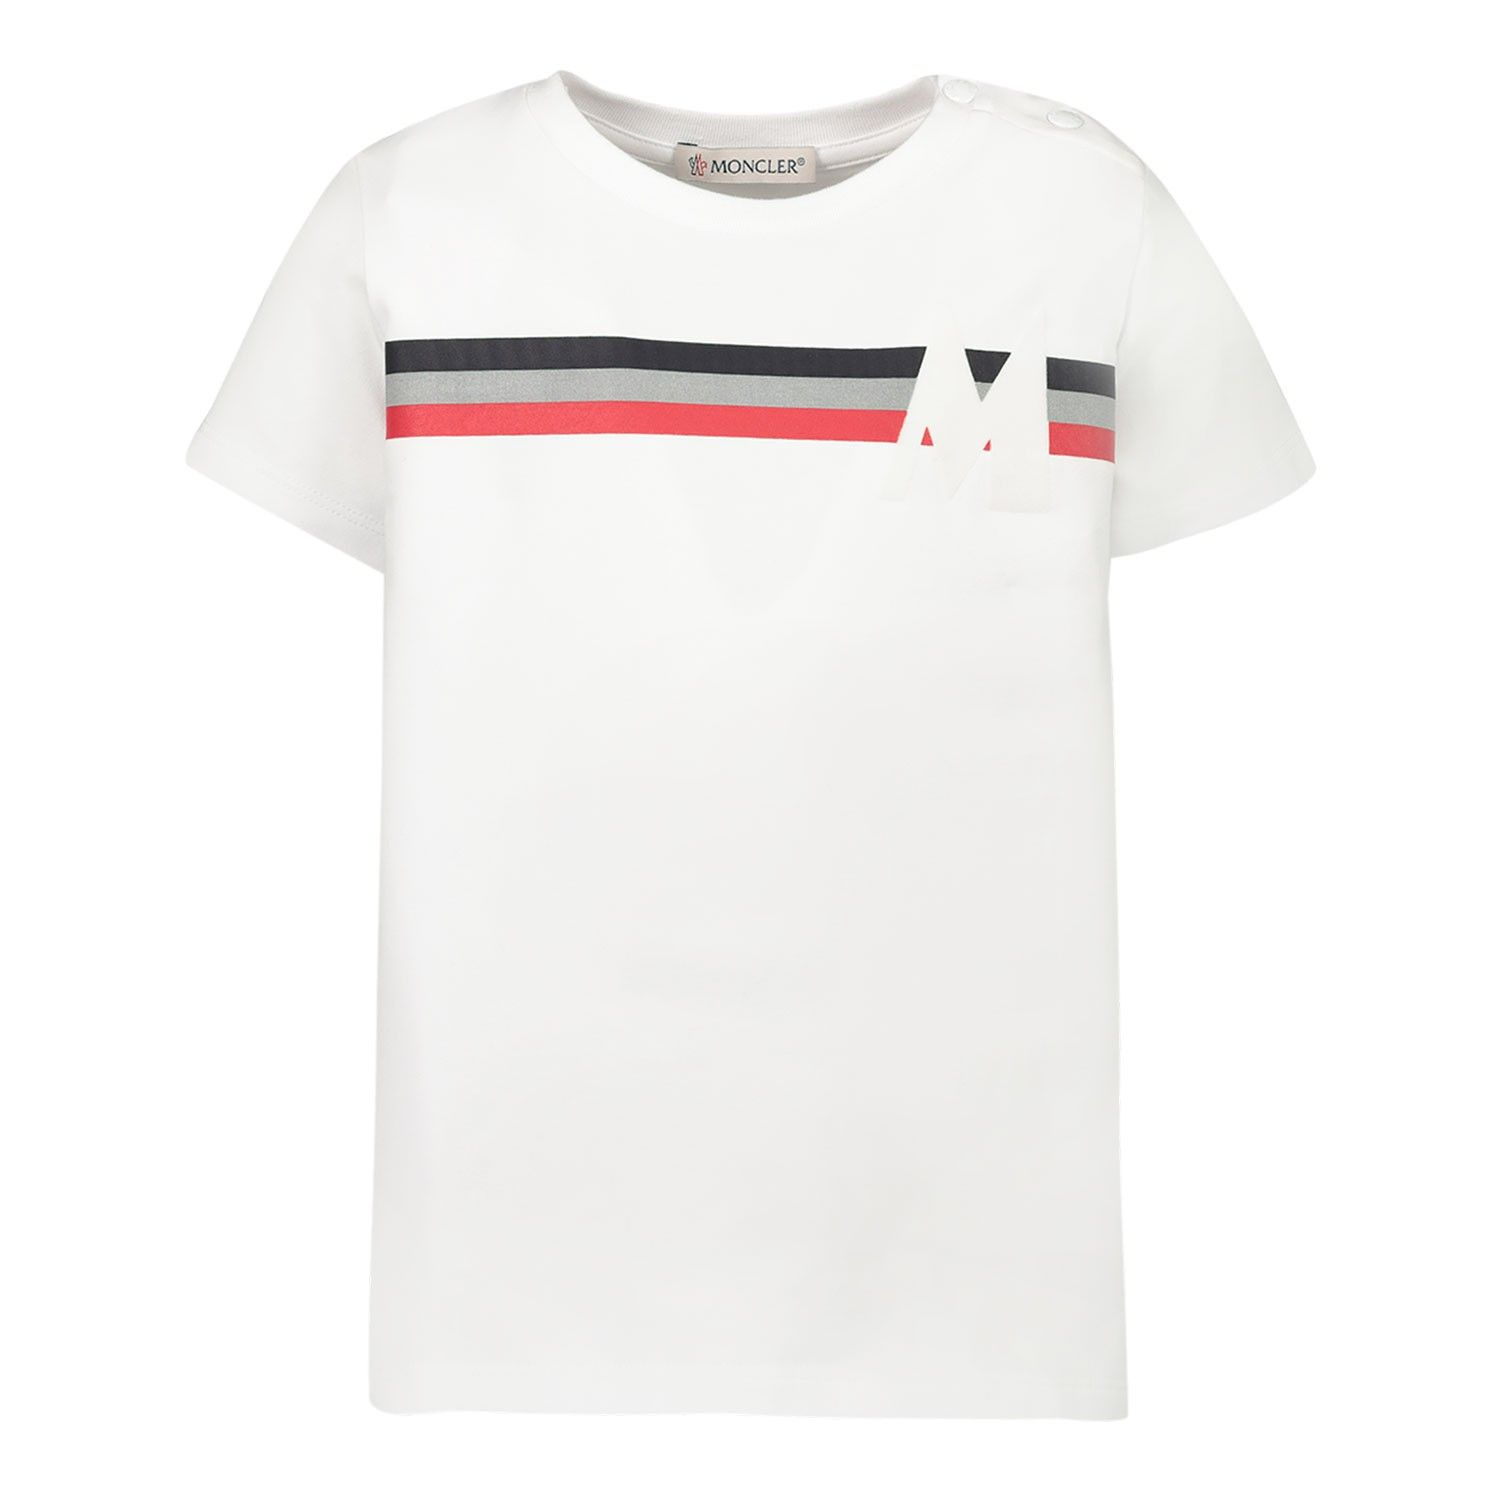 Picture of Moncler 8C71520 baby shirt white